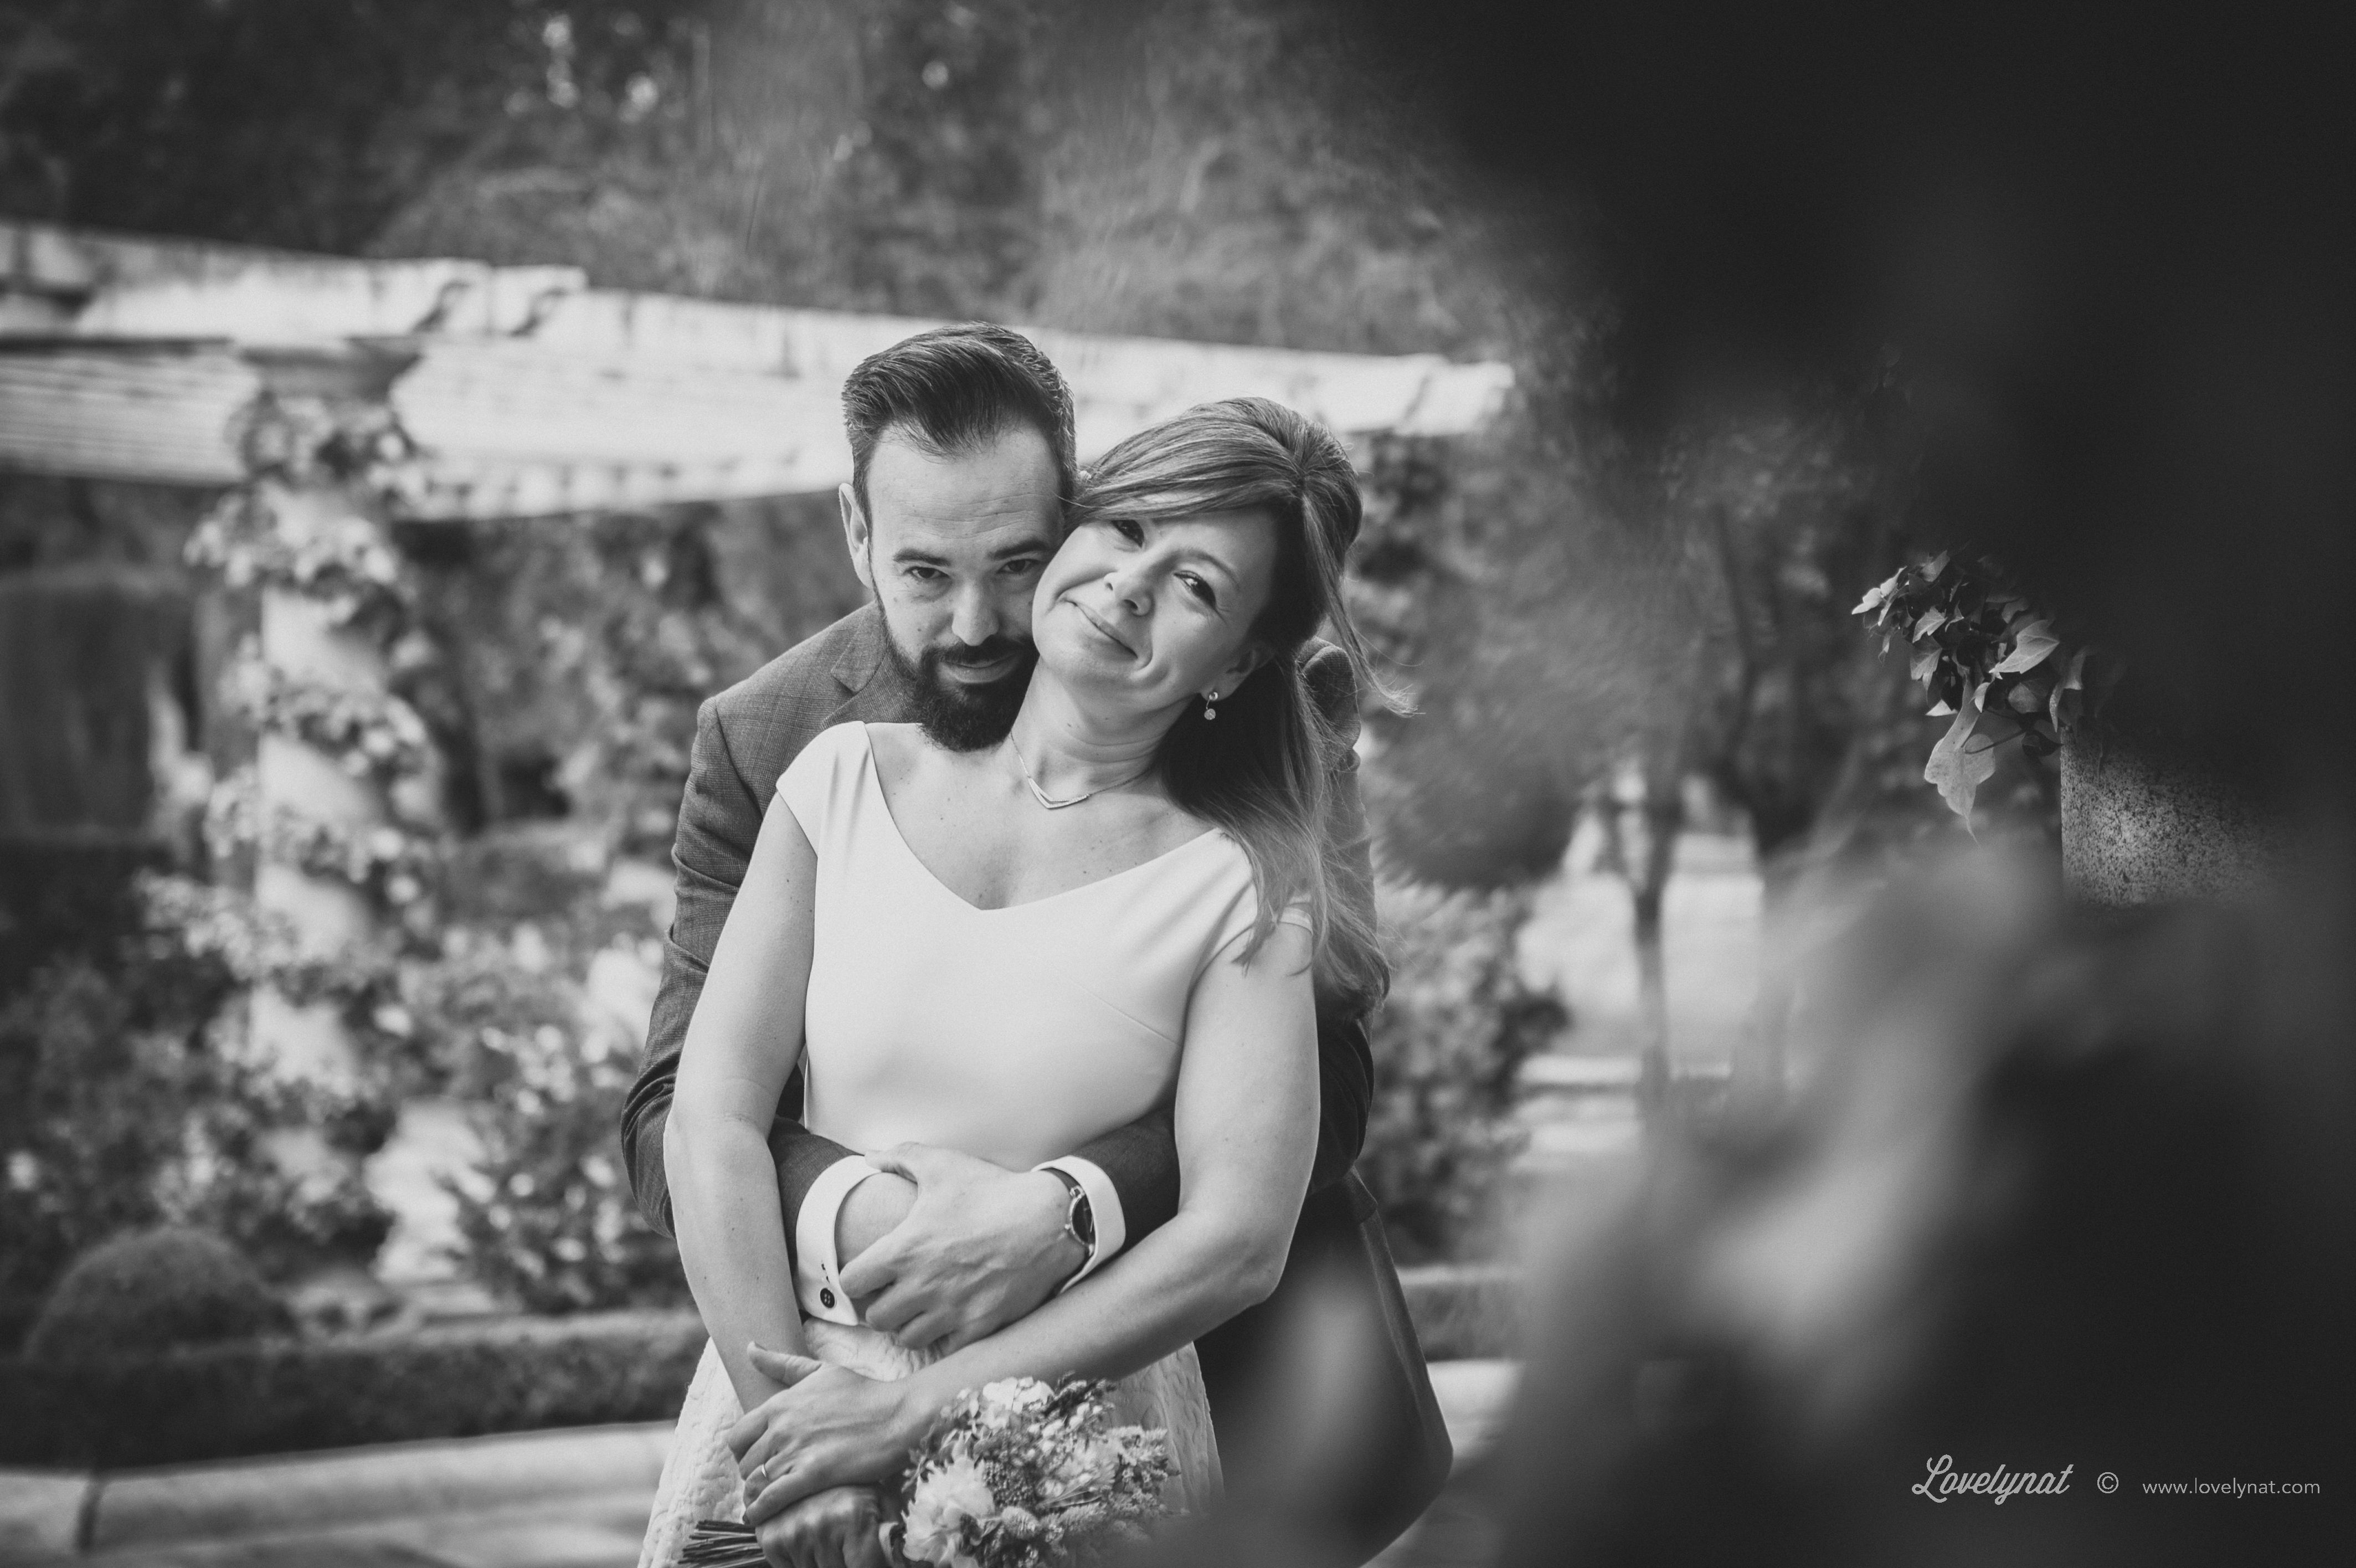 Antonio&Ester_Lovelynat-Photography_066_BW_result